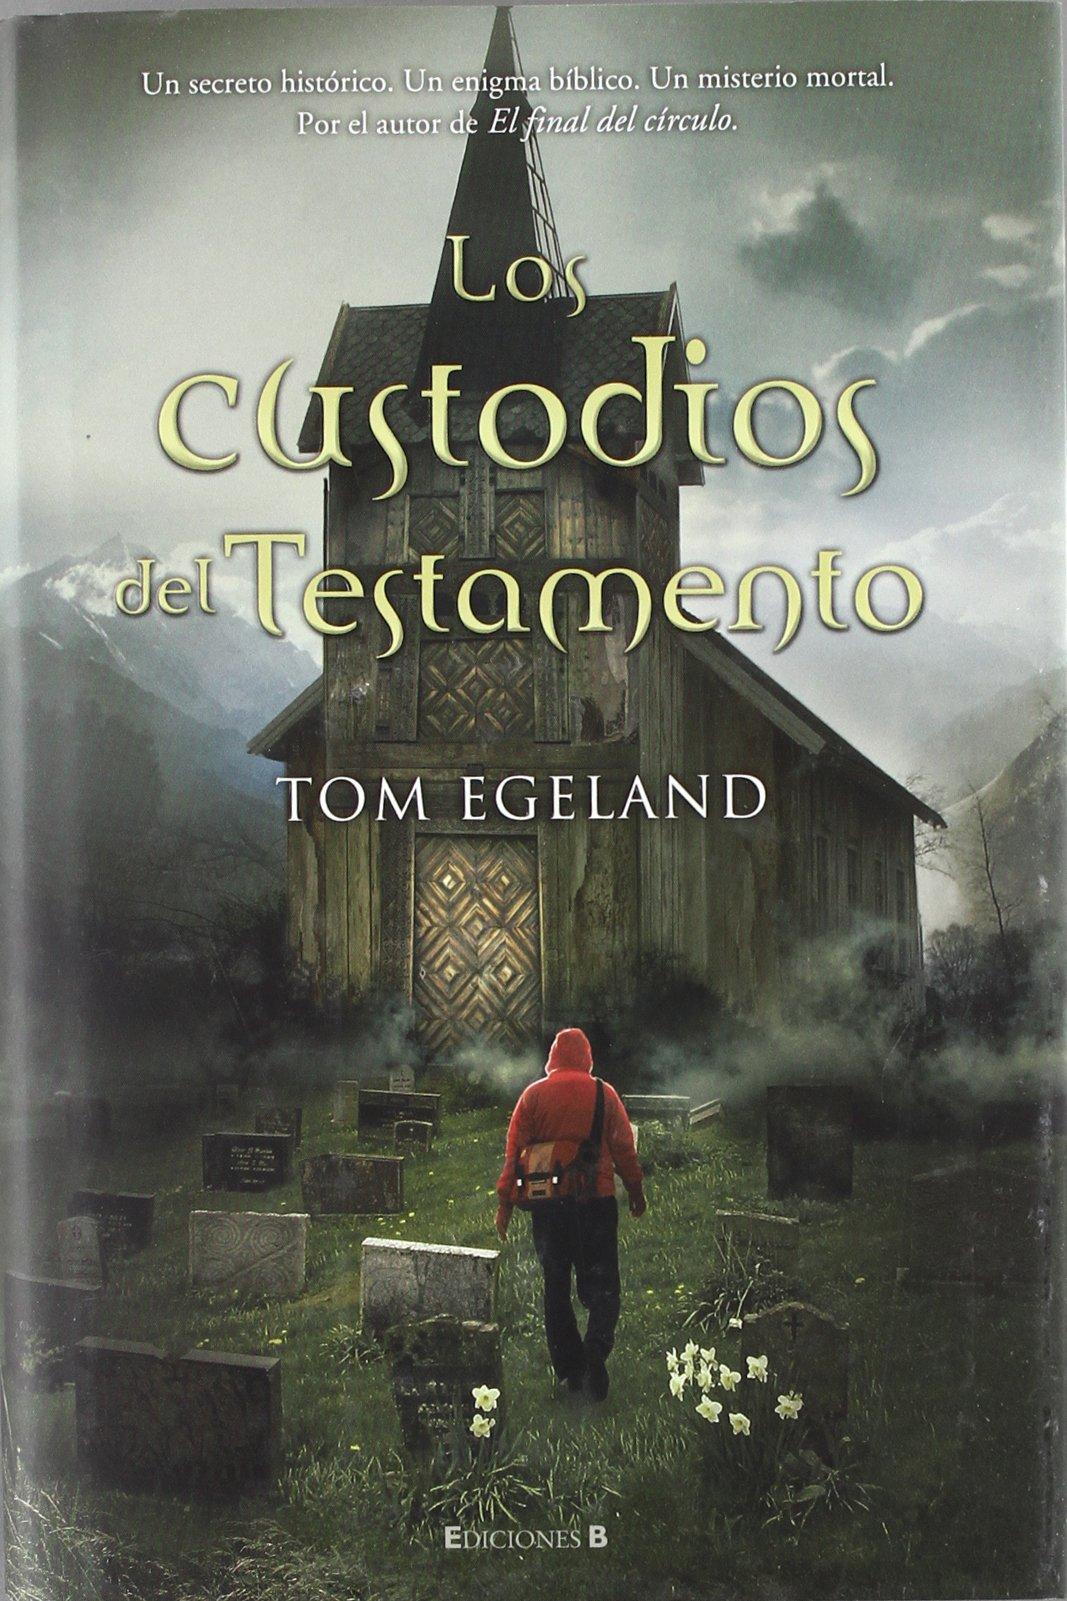 Custodios del testamento, Los (Spanish Edition): Egeland, Tom: 9788466636612: Amazon.com: Books